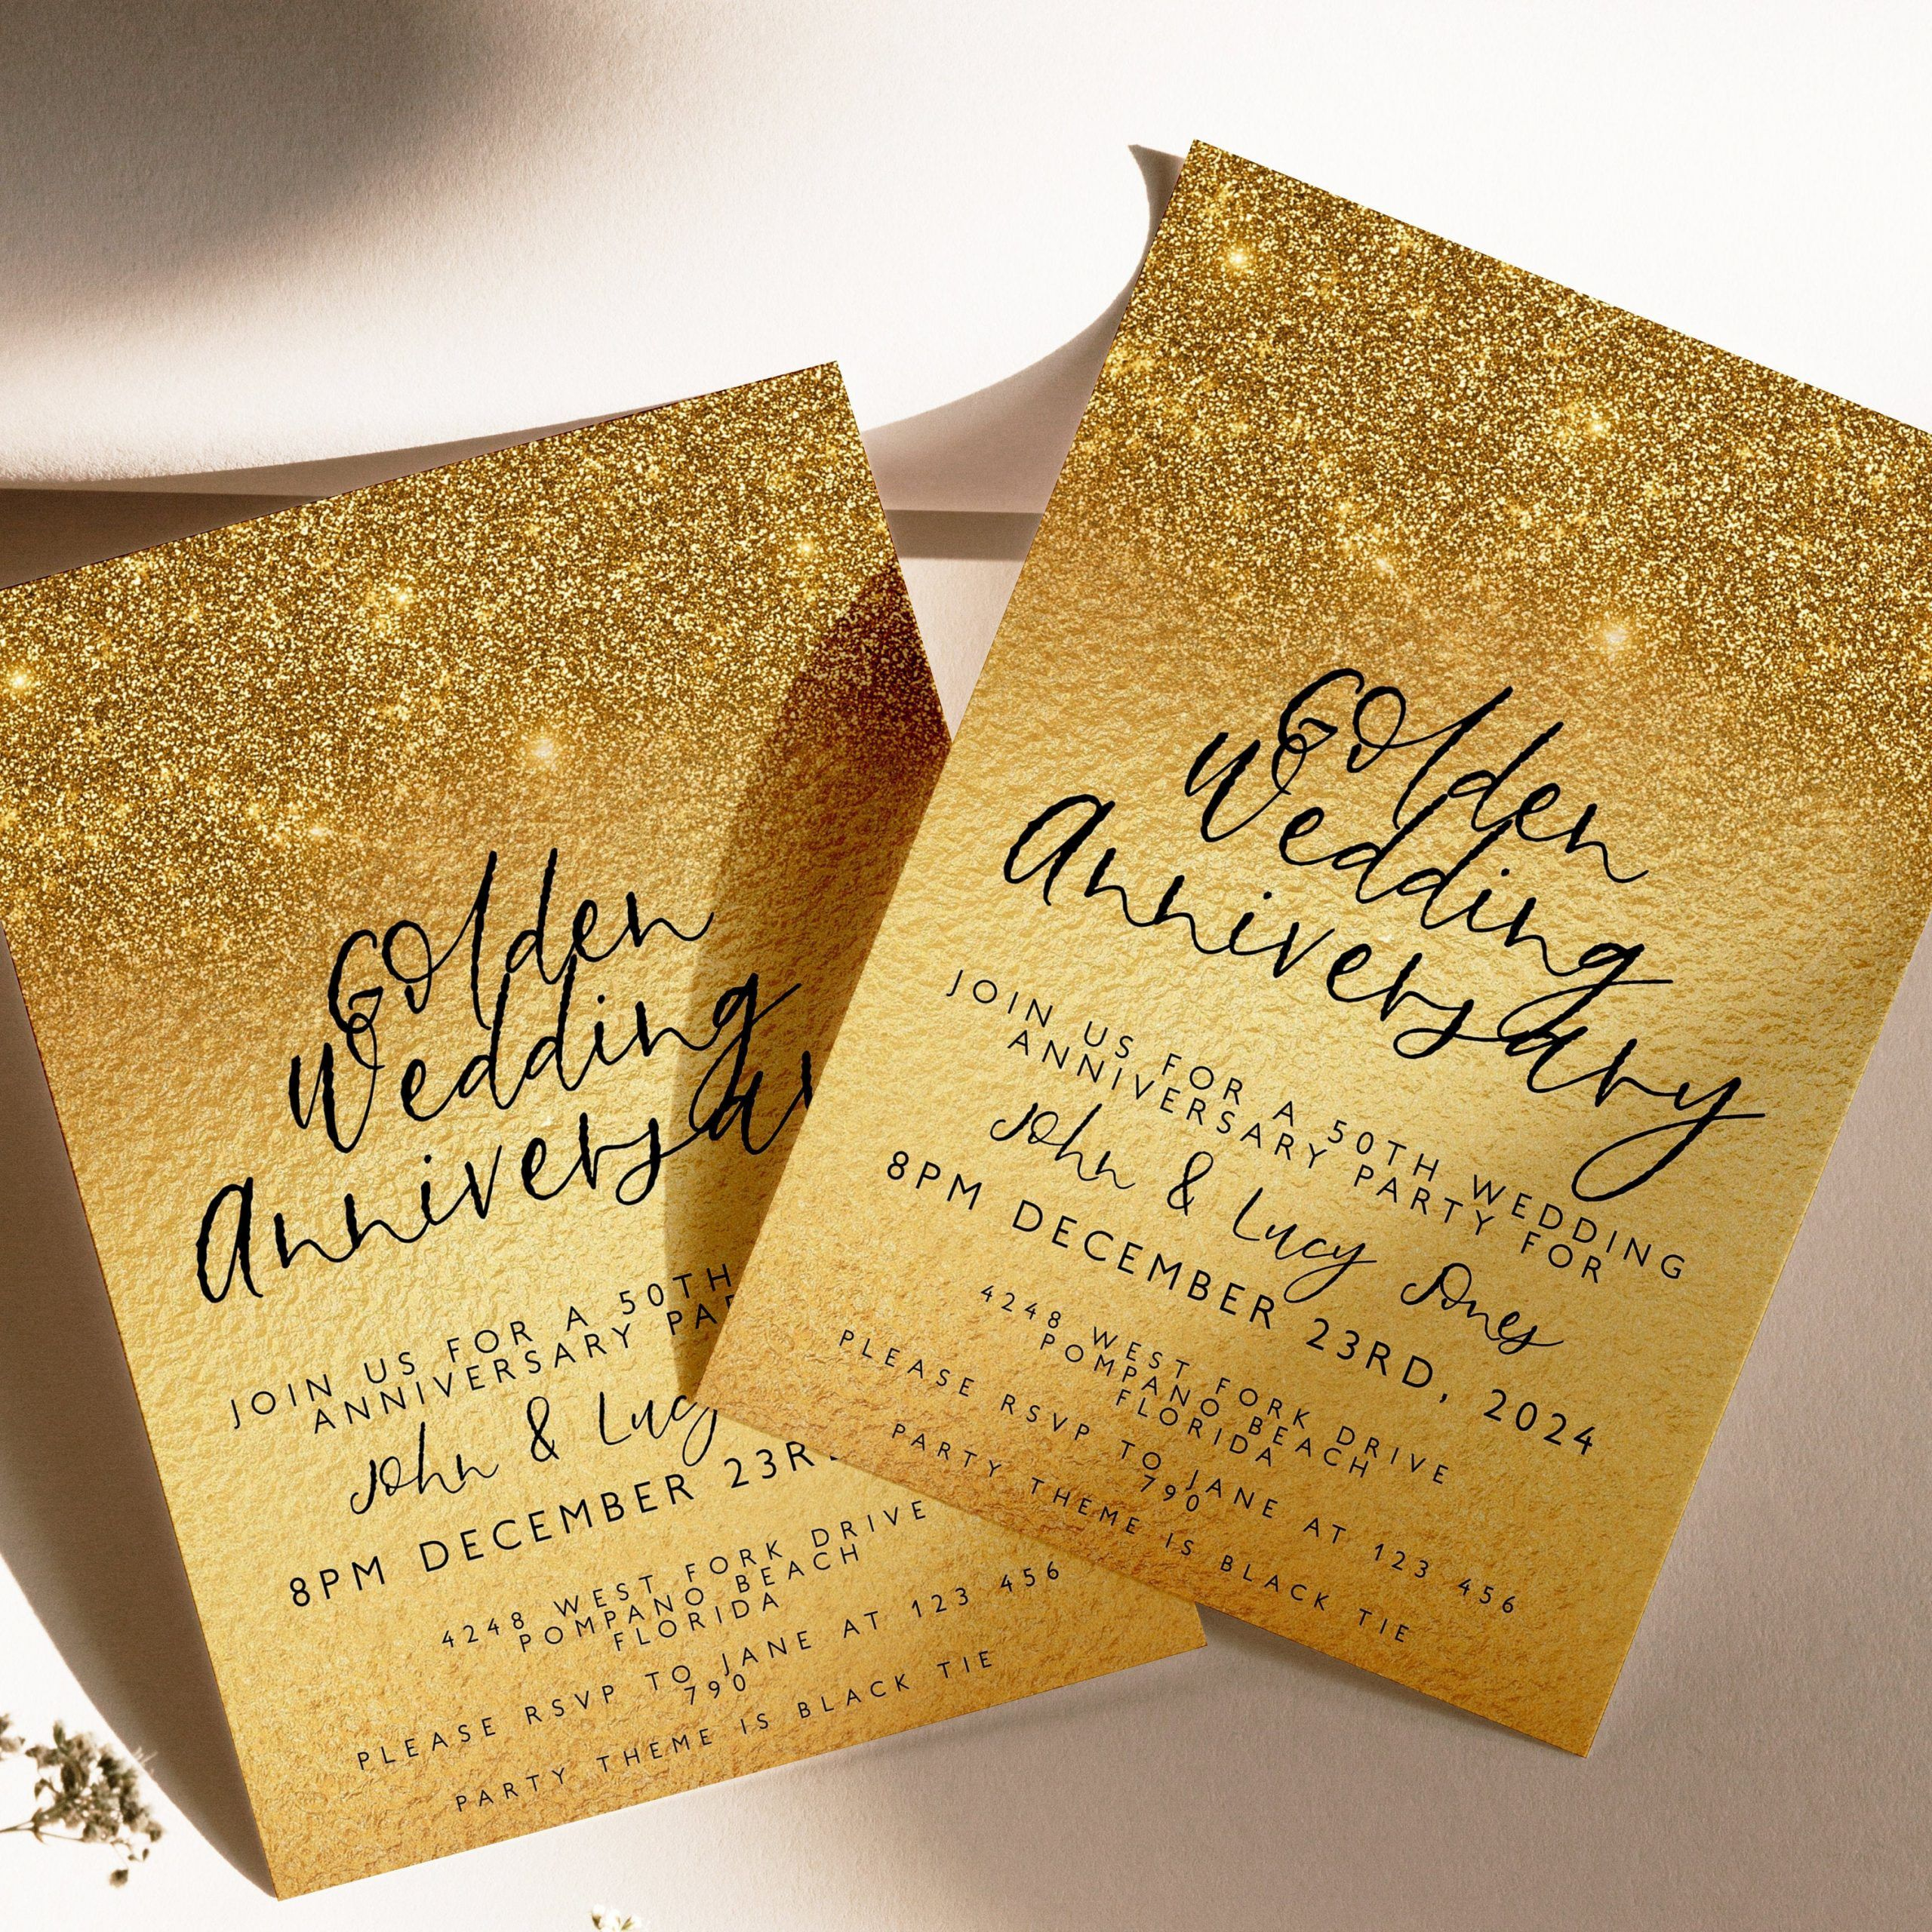 000 Awful 50th Wedding Anniversary Invitation Template Concept  Templates Card Sample GoldenFull